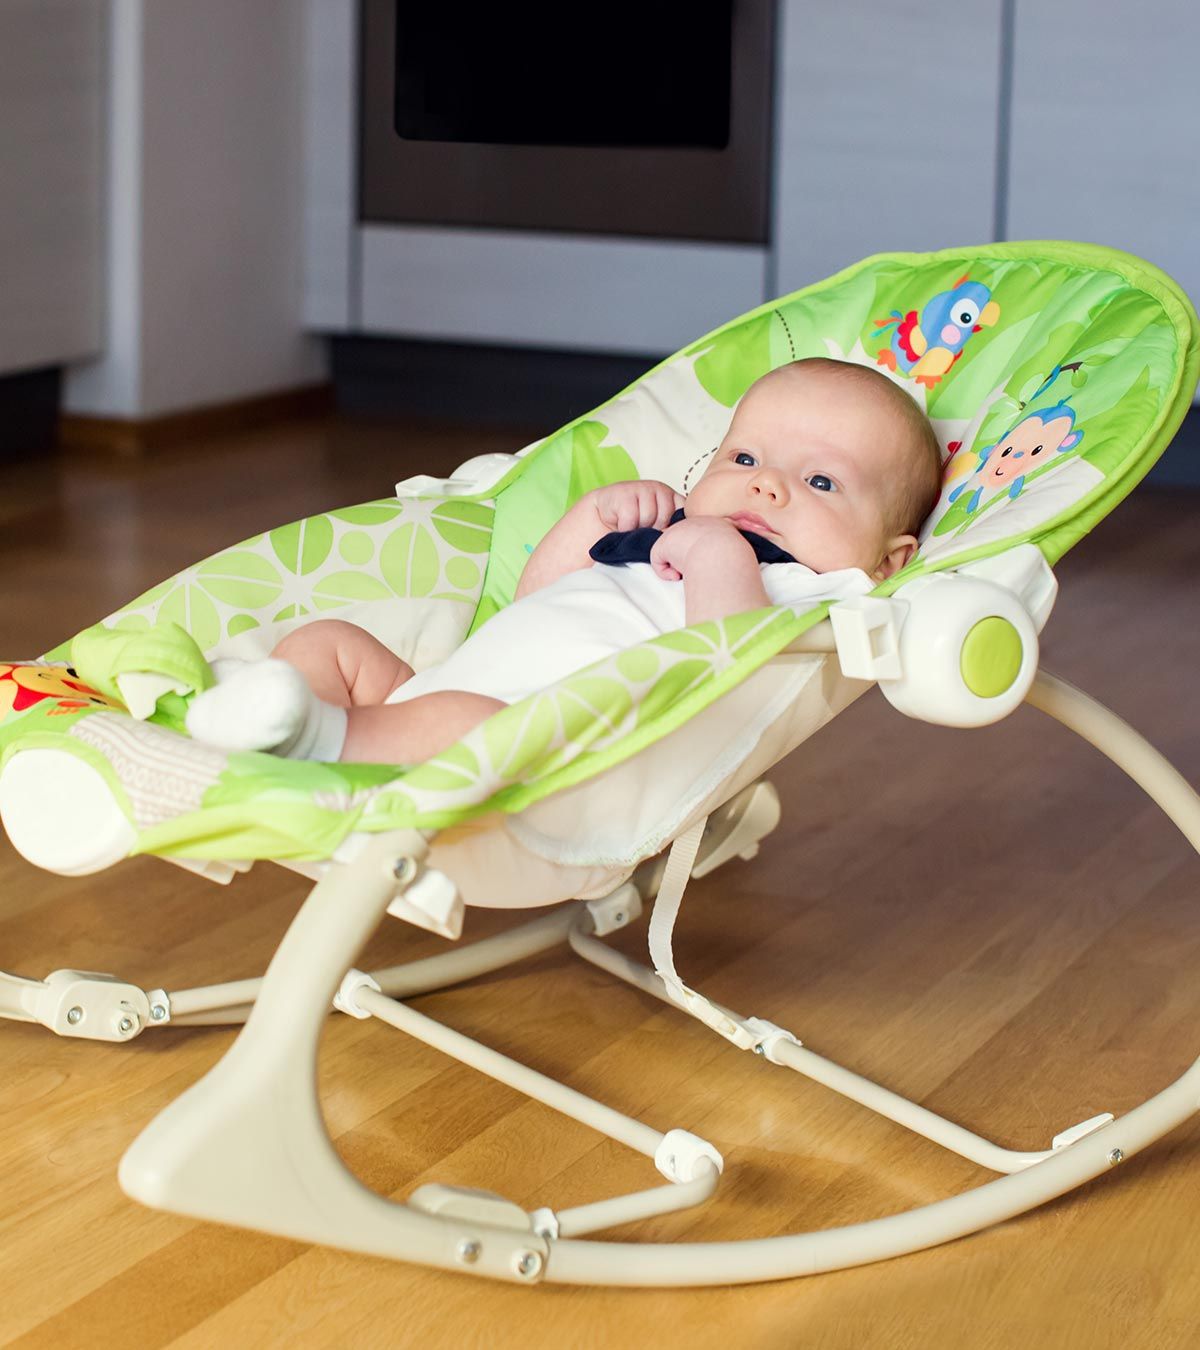 Prime 11 Best Nursery Gliders And Baby Rocking Chairs In 2019 Spiritservingveterans Wood Chair Design Ideas Spiritservingveteransorg